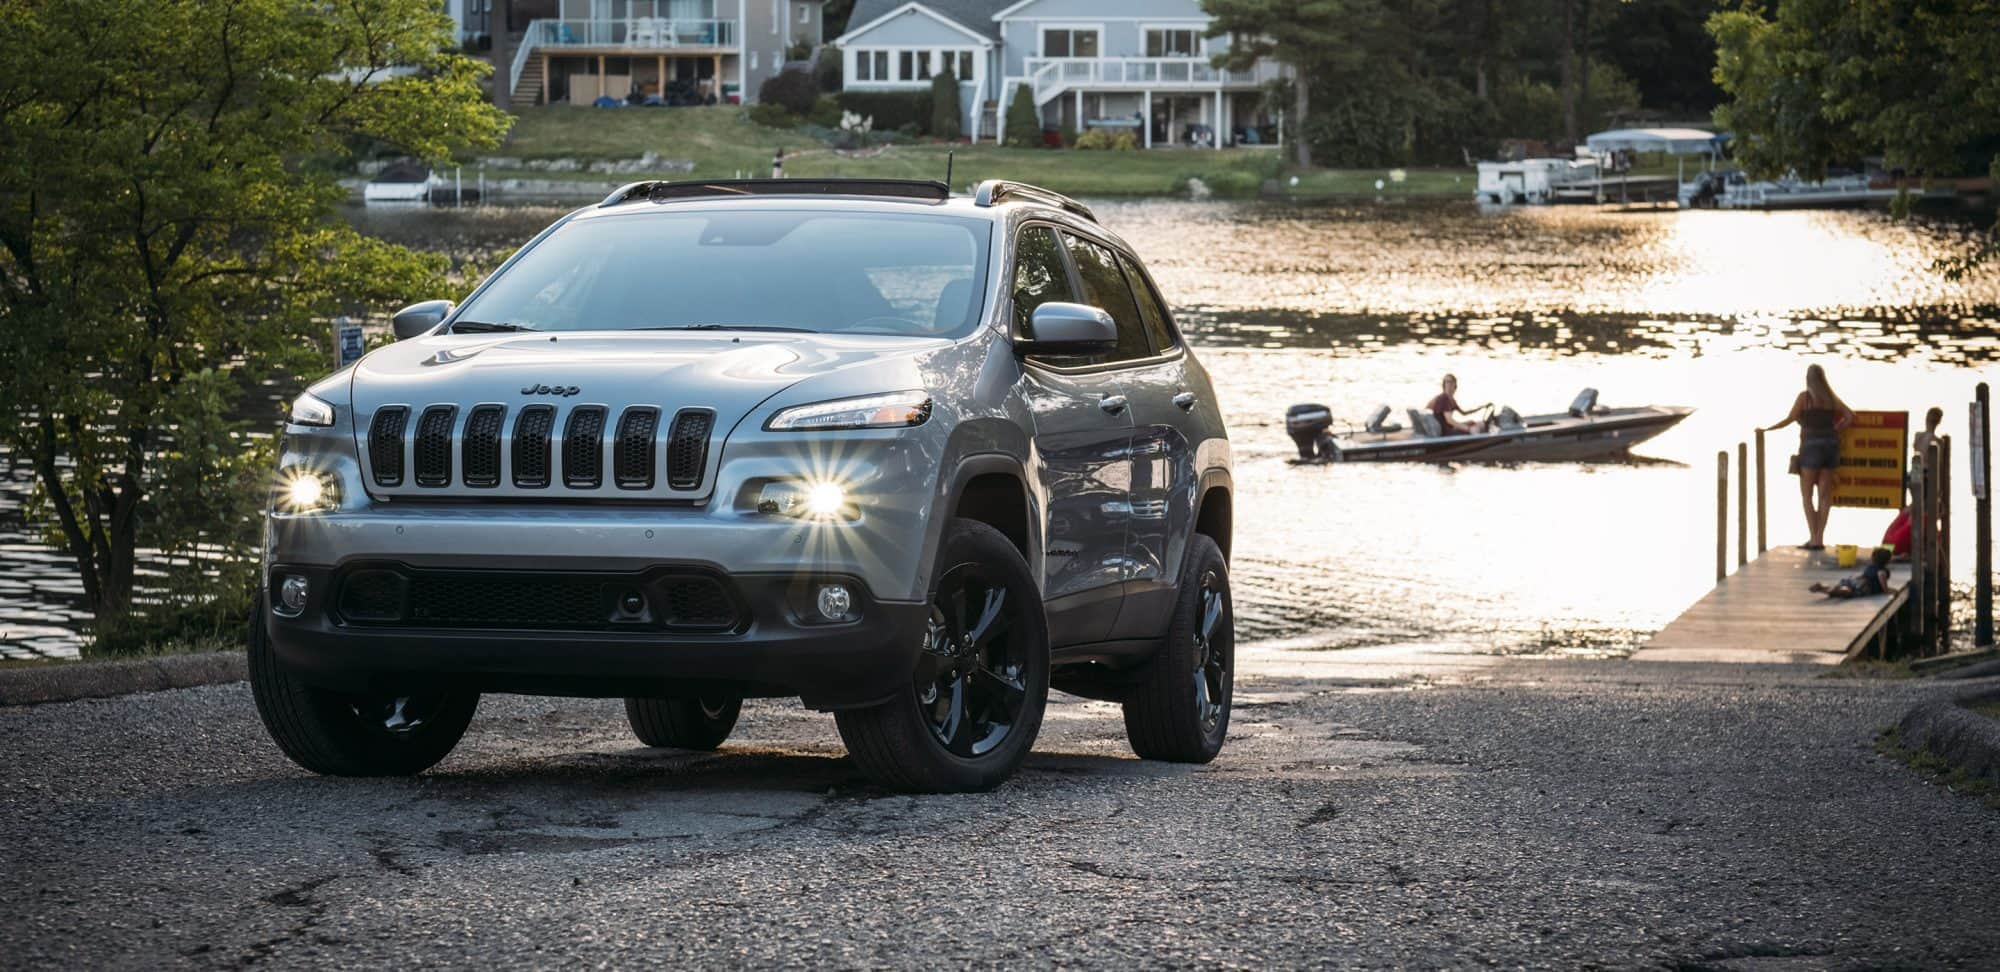 cjdr savings youtube good wicked jeep incentives watch